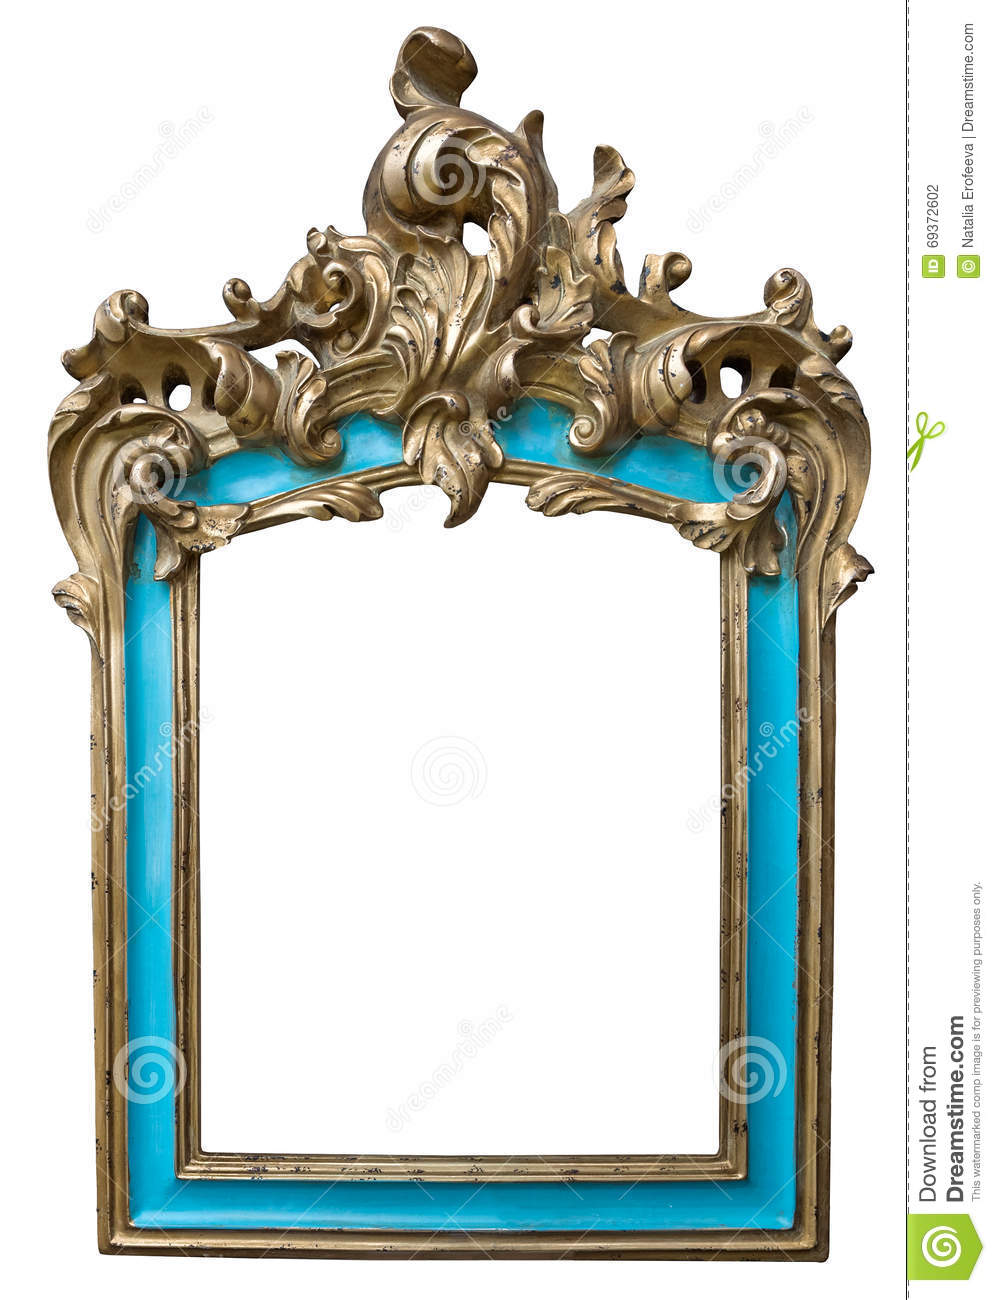 Antique golden turquoise frame isolated on white background